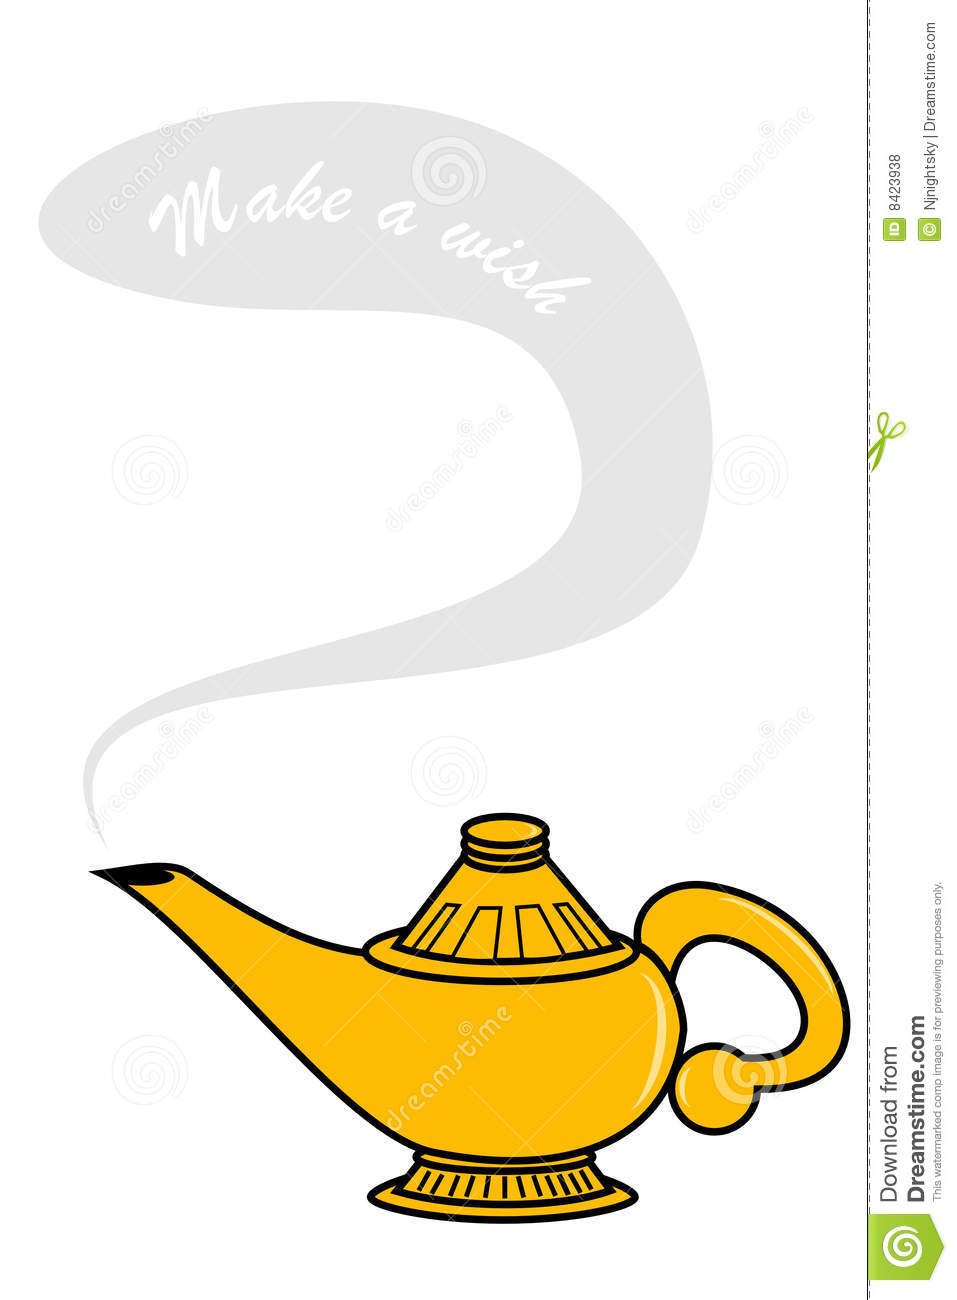 Genie lamp stock photos pictures royalty free genie - Royalty Free Stock Photo Genie Lamp